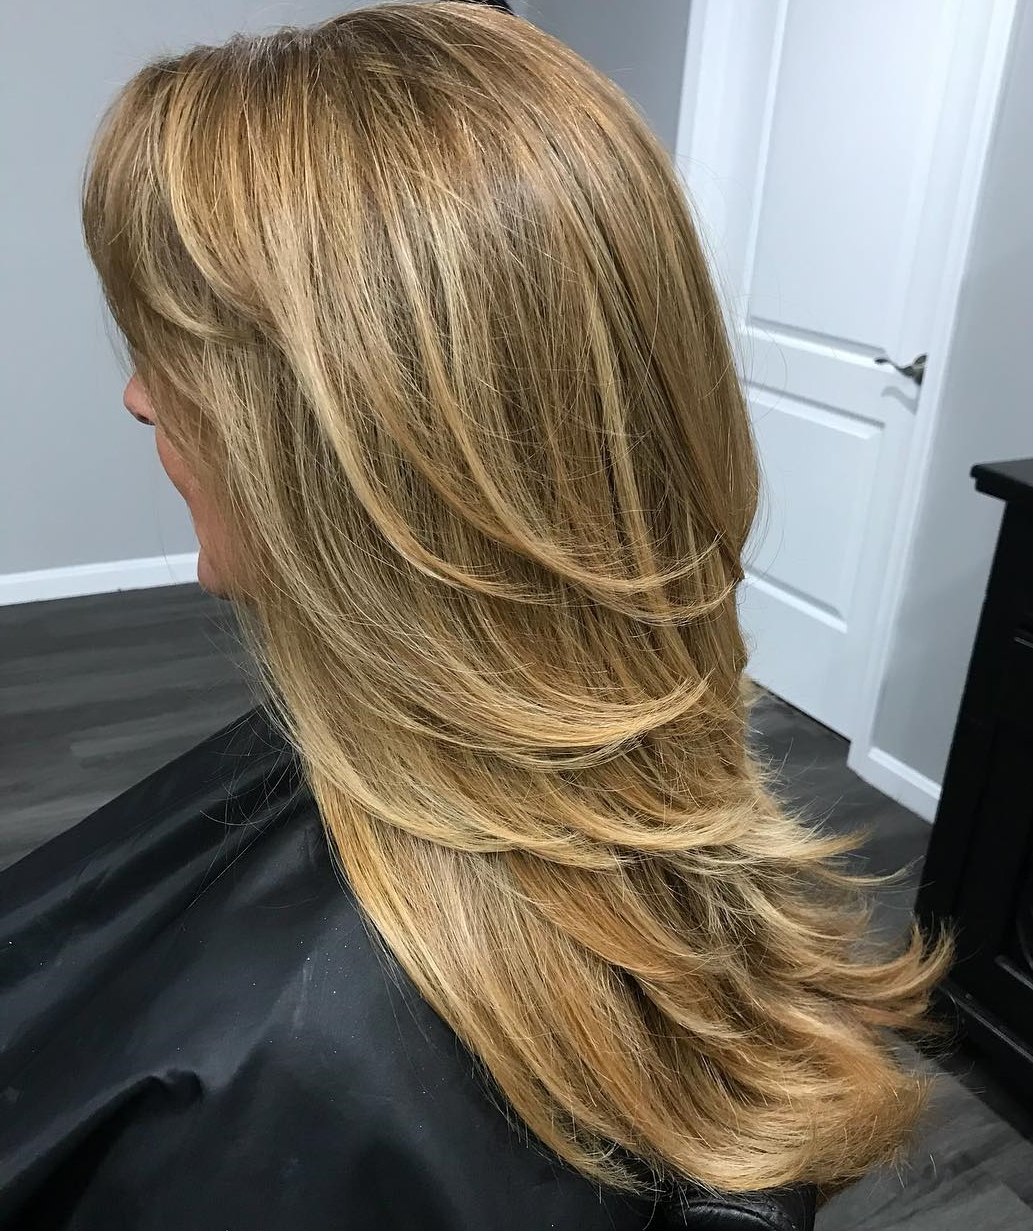 60 Trendiest Hairstyles And Haircuts For Women Over 50 In 2019 Intended For Famous Medium Haircuts With Flipped Ends For Thick Hair (View 14 of 20)